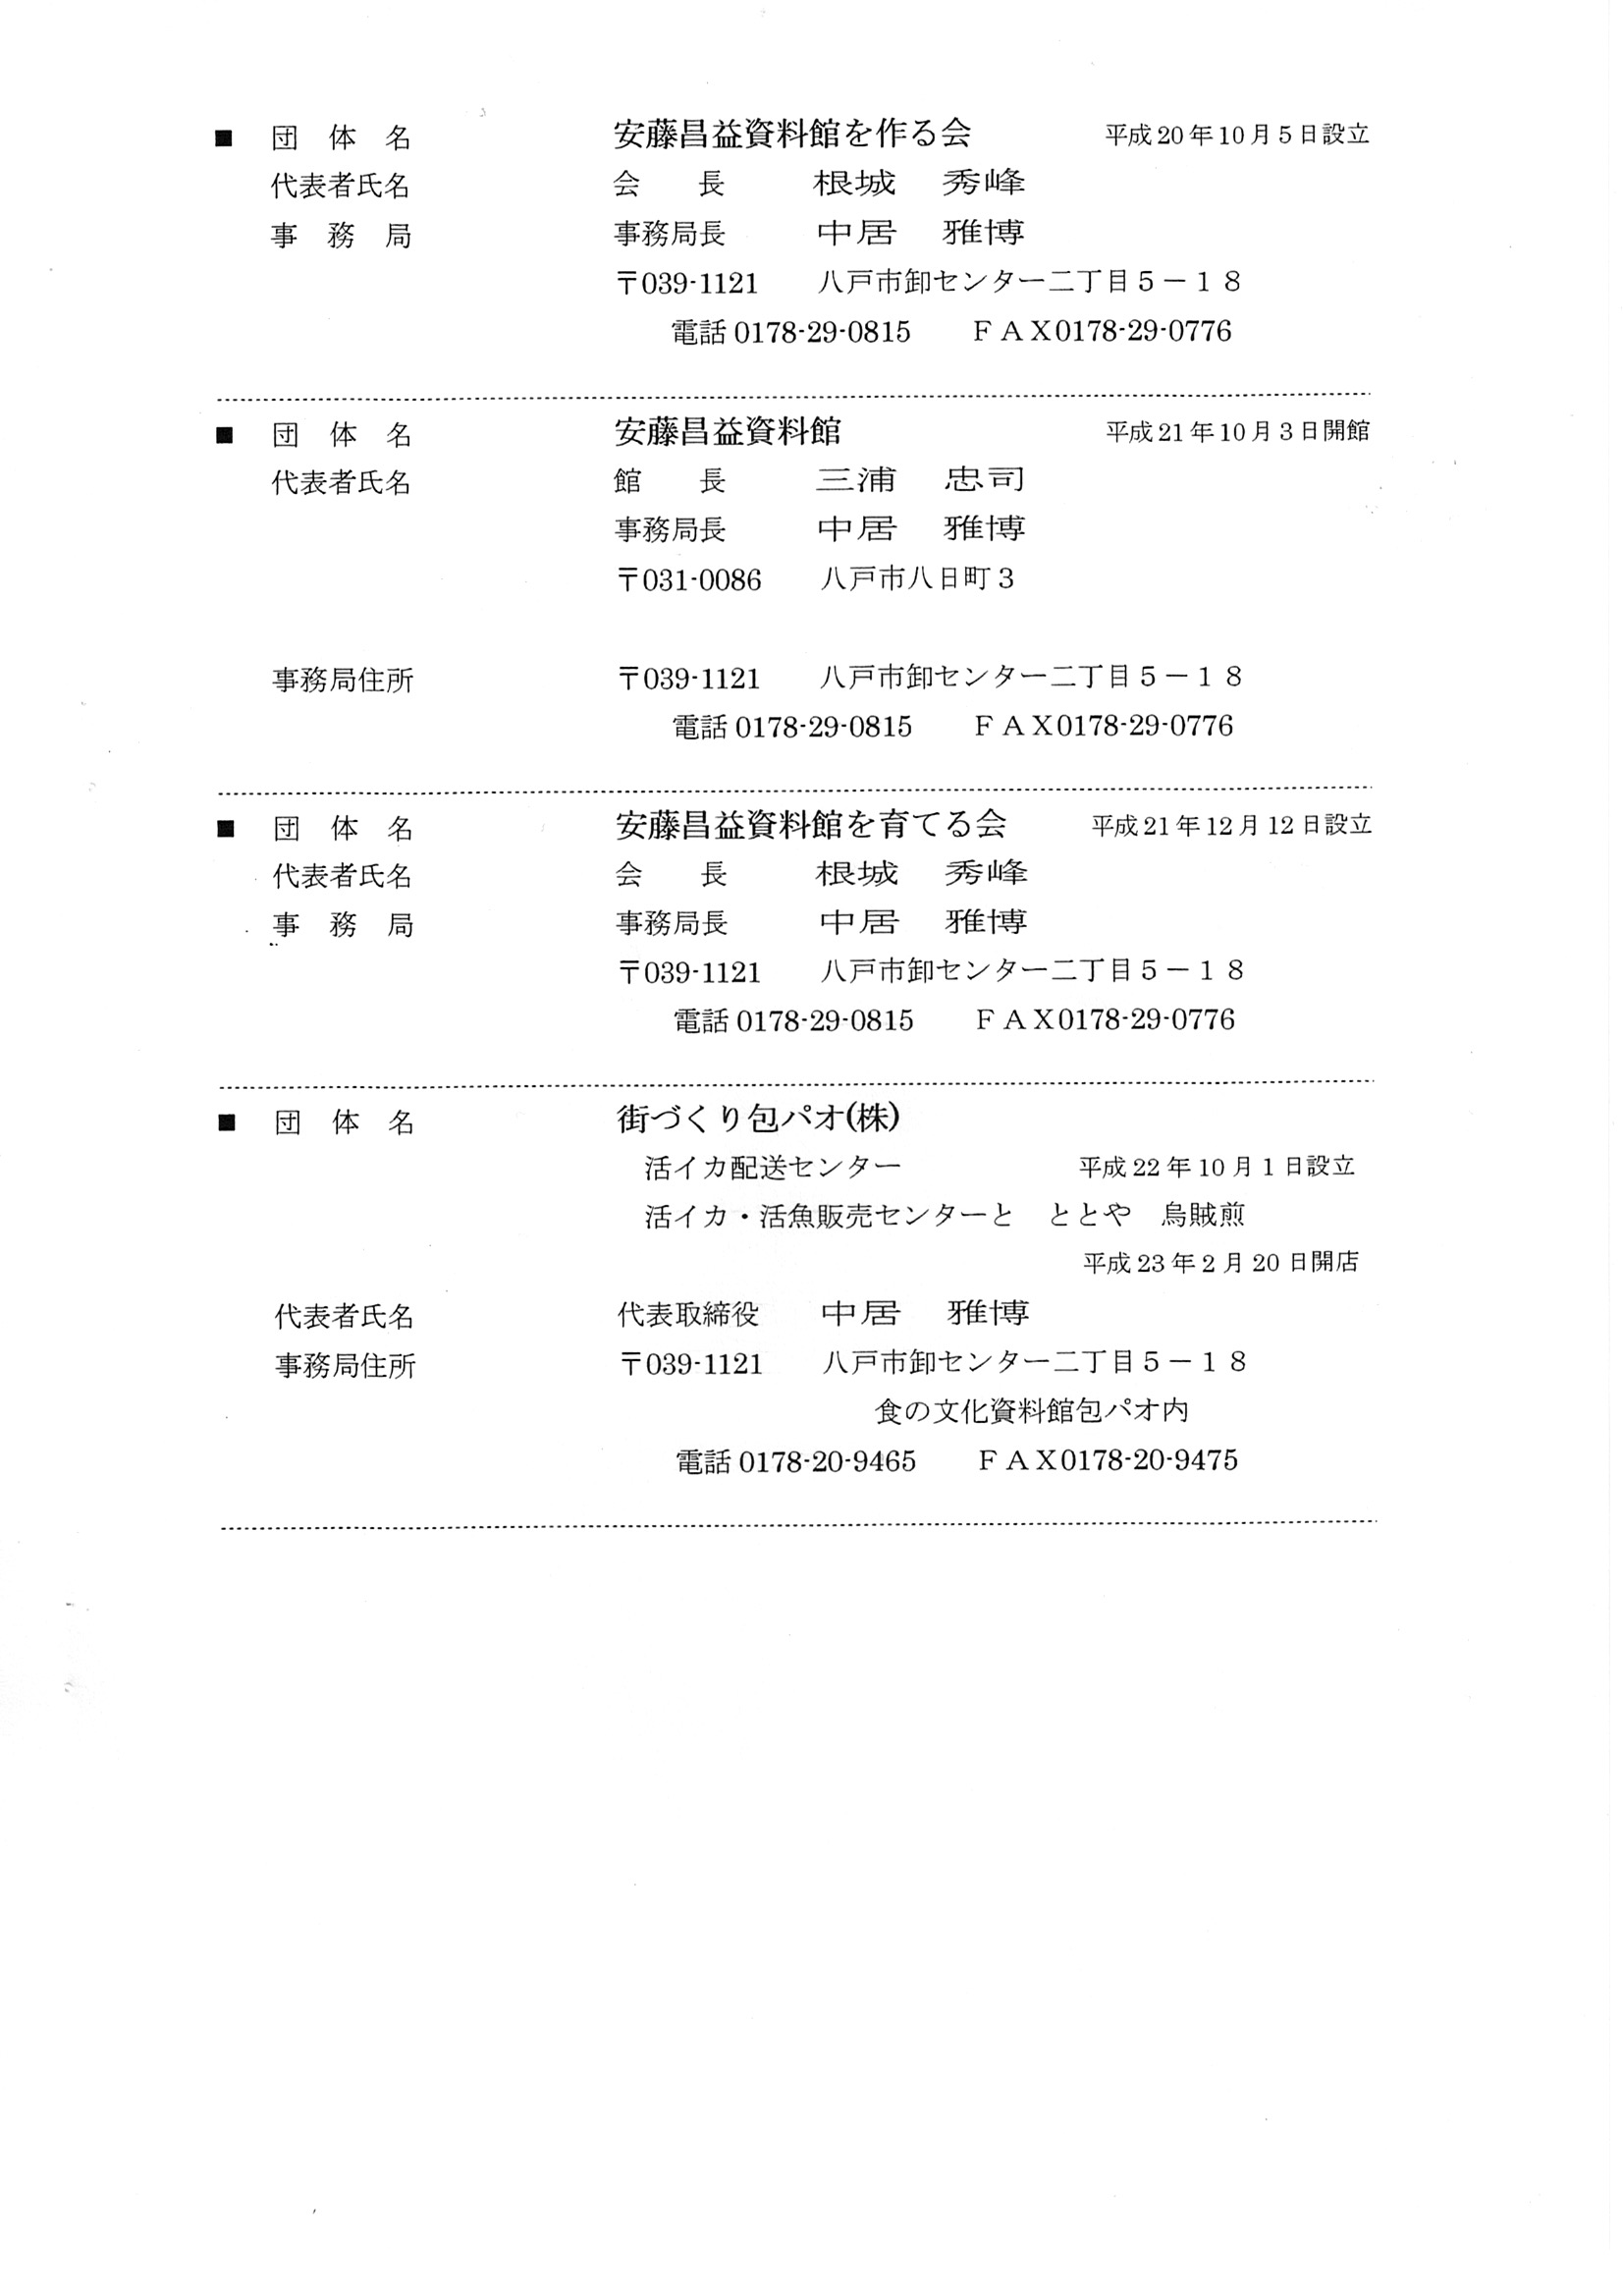 Scan 13